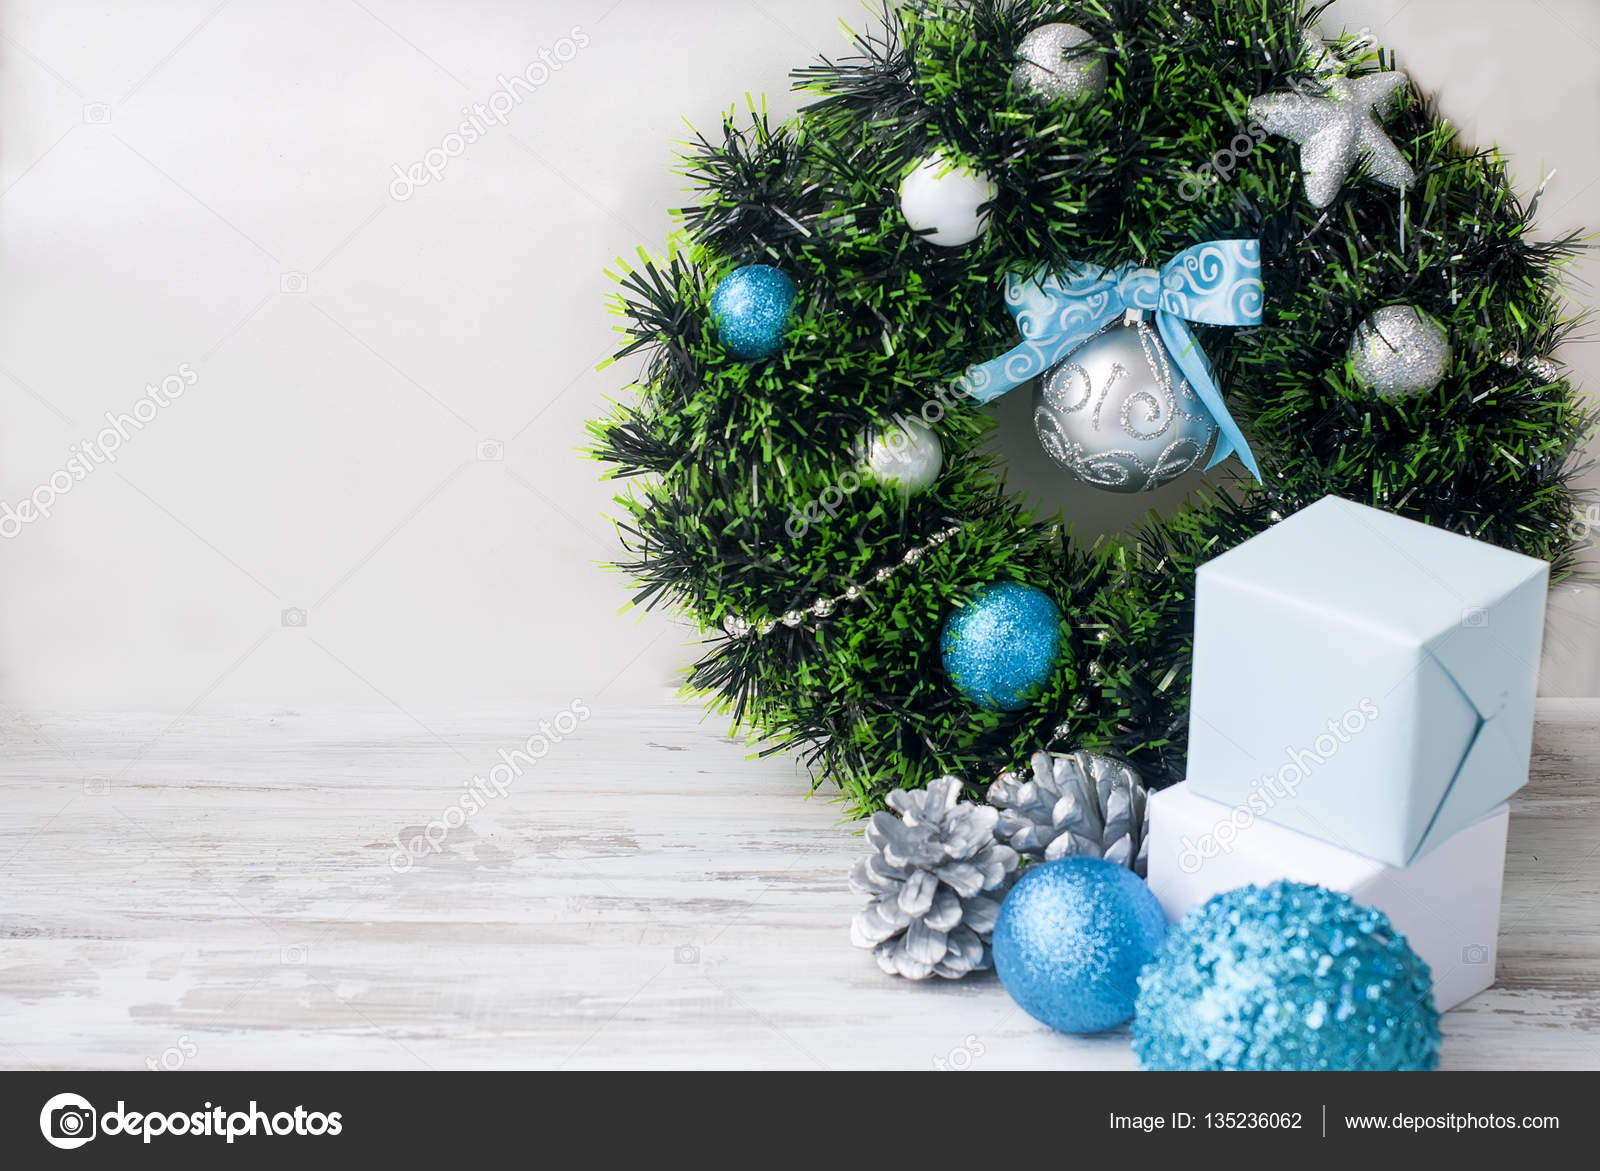 Christmas Wreath Blue Silver And White Color Stock Photo C Vi Mart 135236062